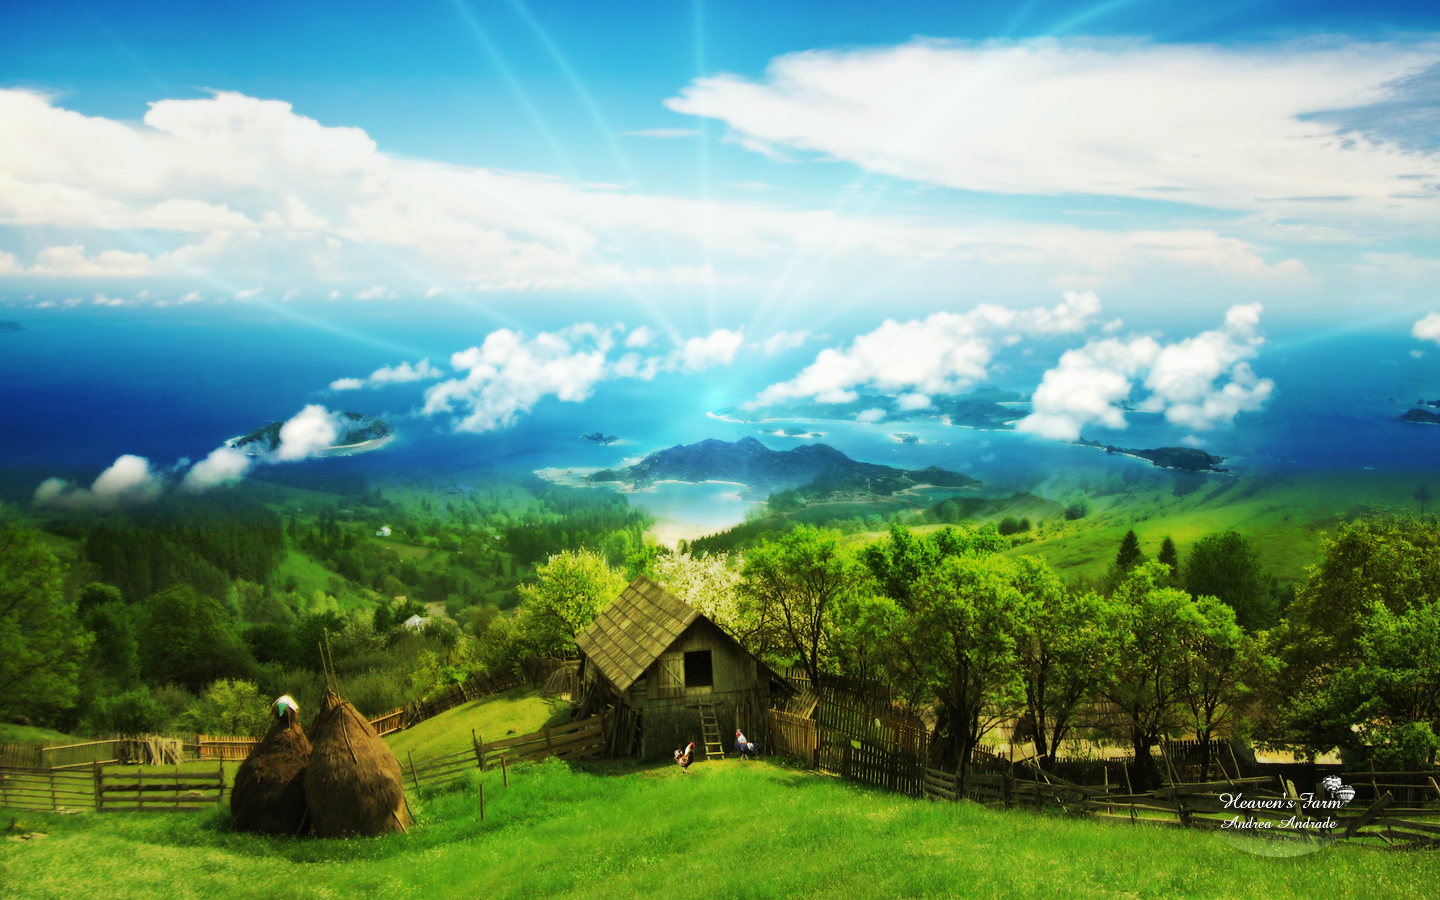 http://4.bp.blogspot.com/-0tKcFfr4DZI/UE55hLgFs1I/AAAAAAAAHt8/e3RG-ynGBOY/s1600/heavens-farm-hd-wallpaper-desktop-background.jpg